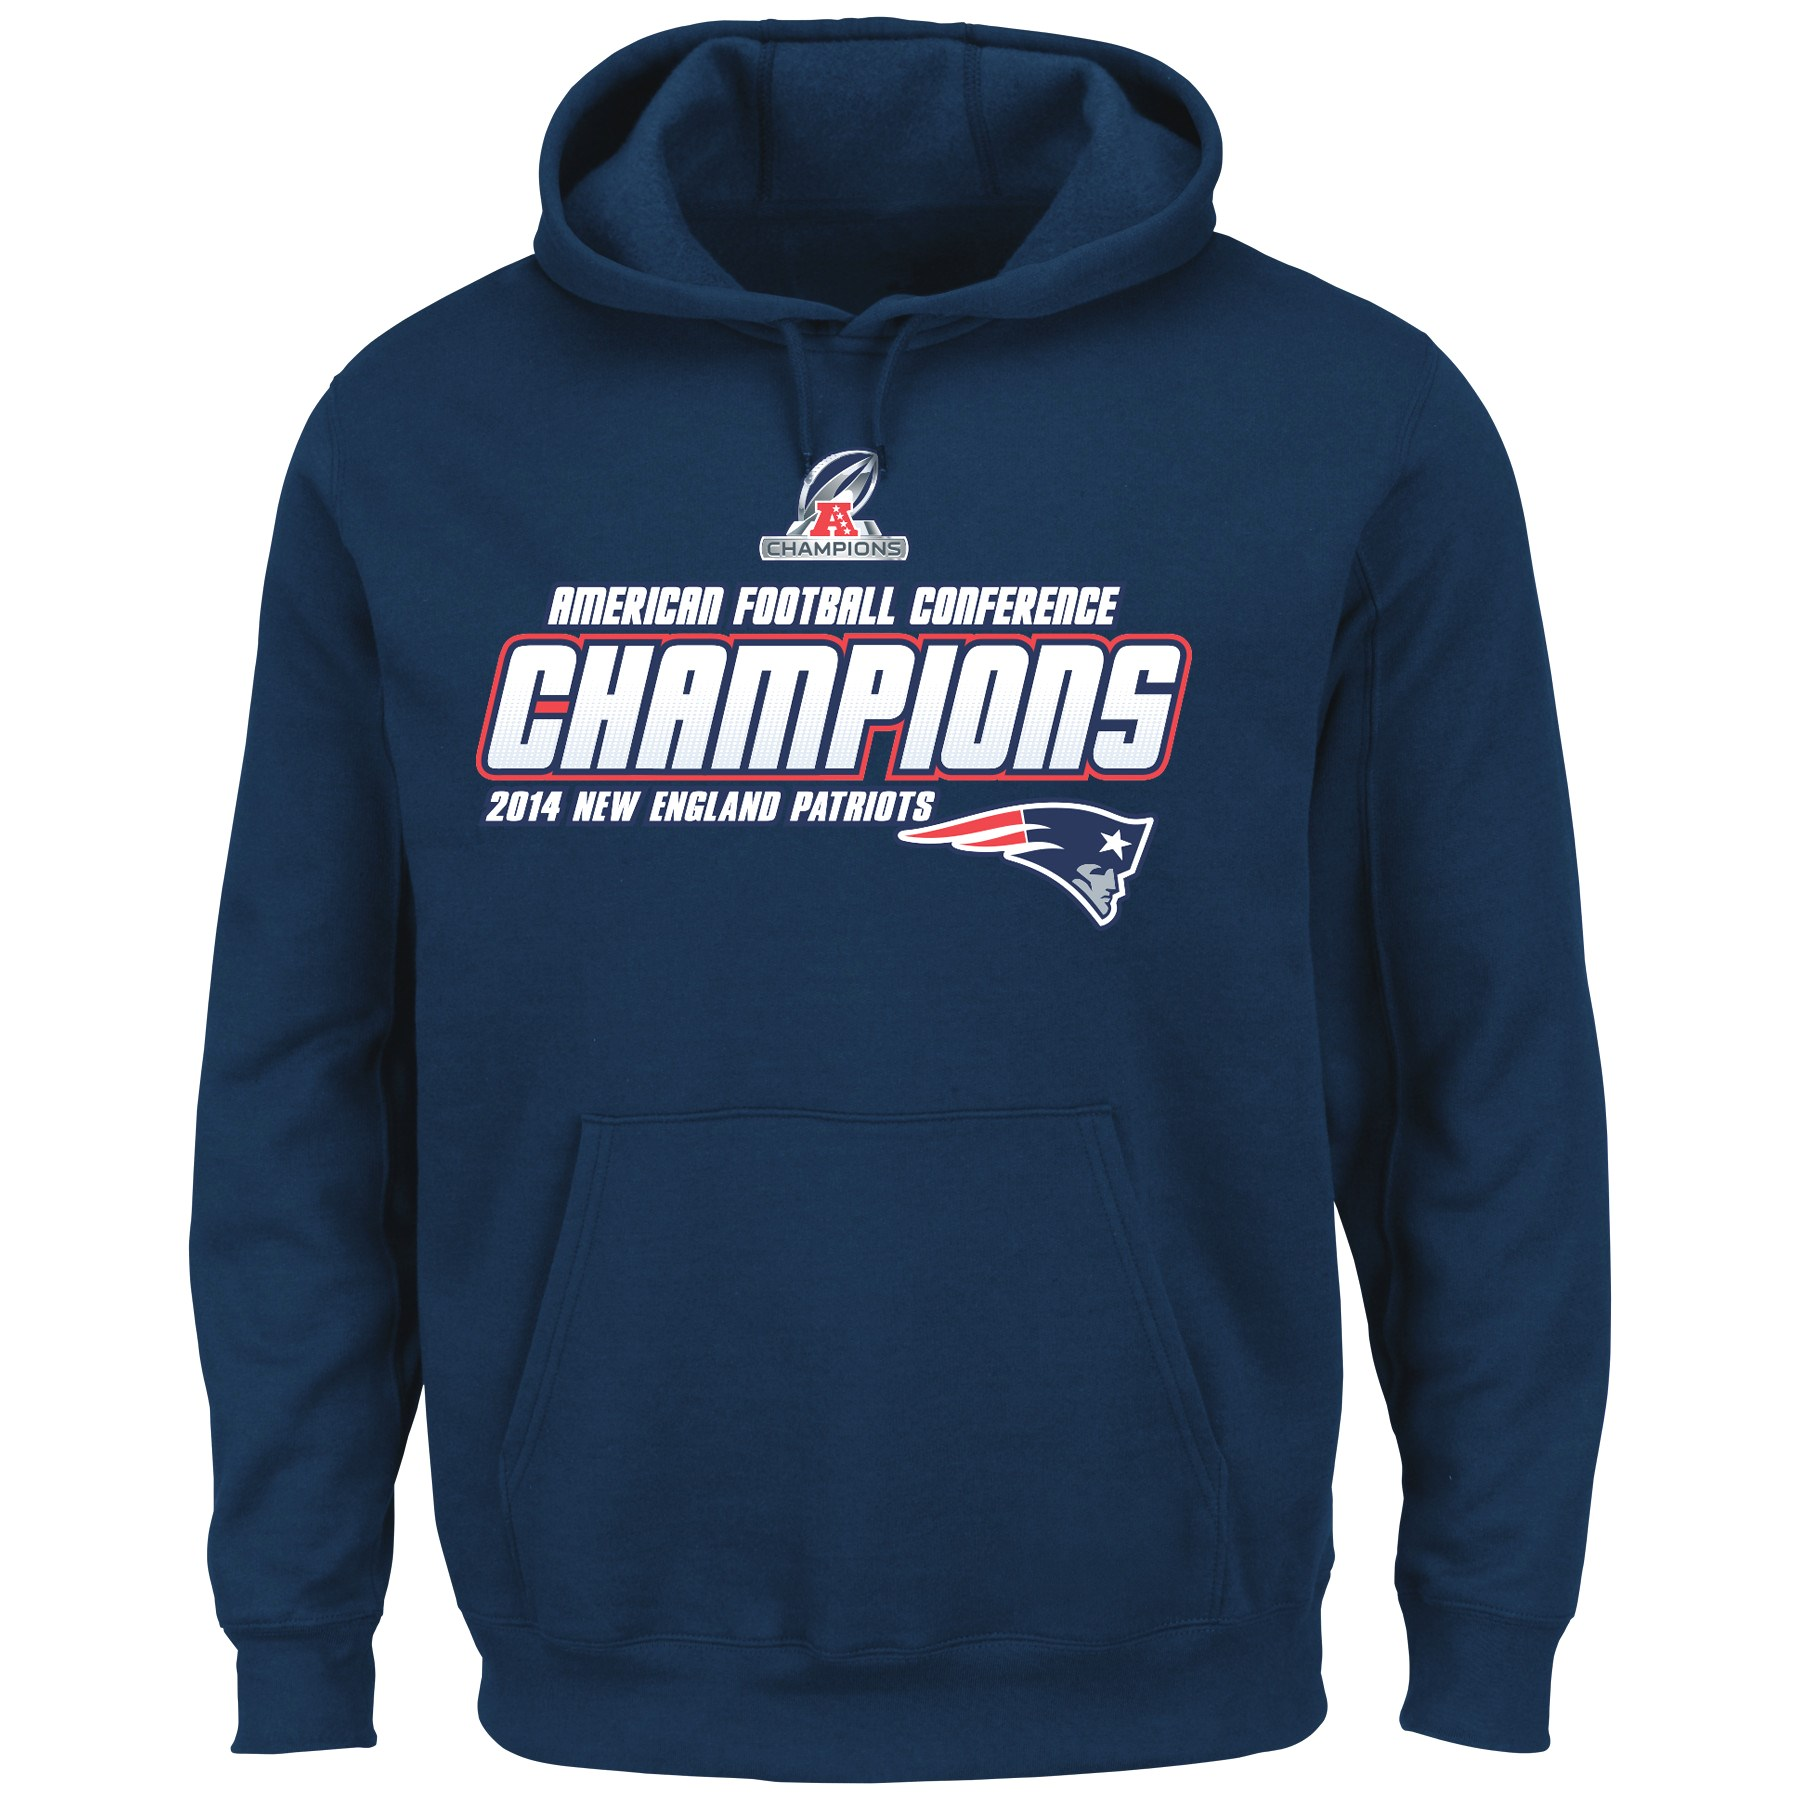 New England Patriots Majestic 2014 AFC Conference Champions Supremacy Sweatshirt